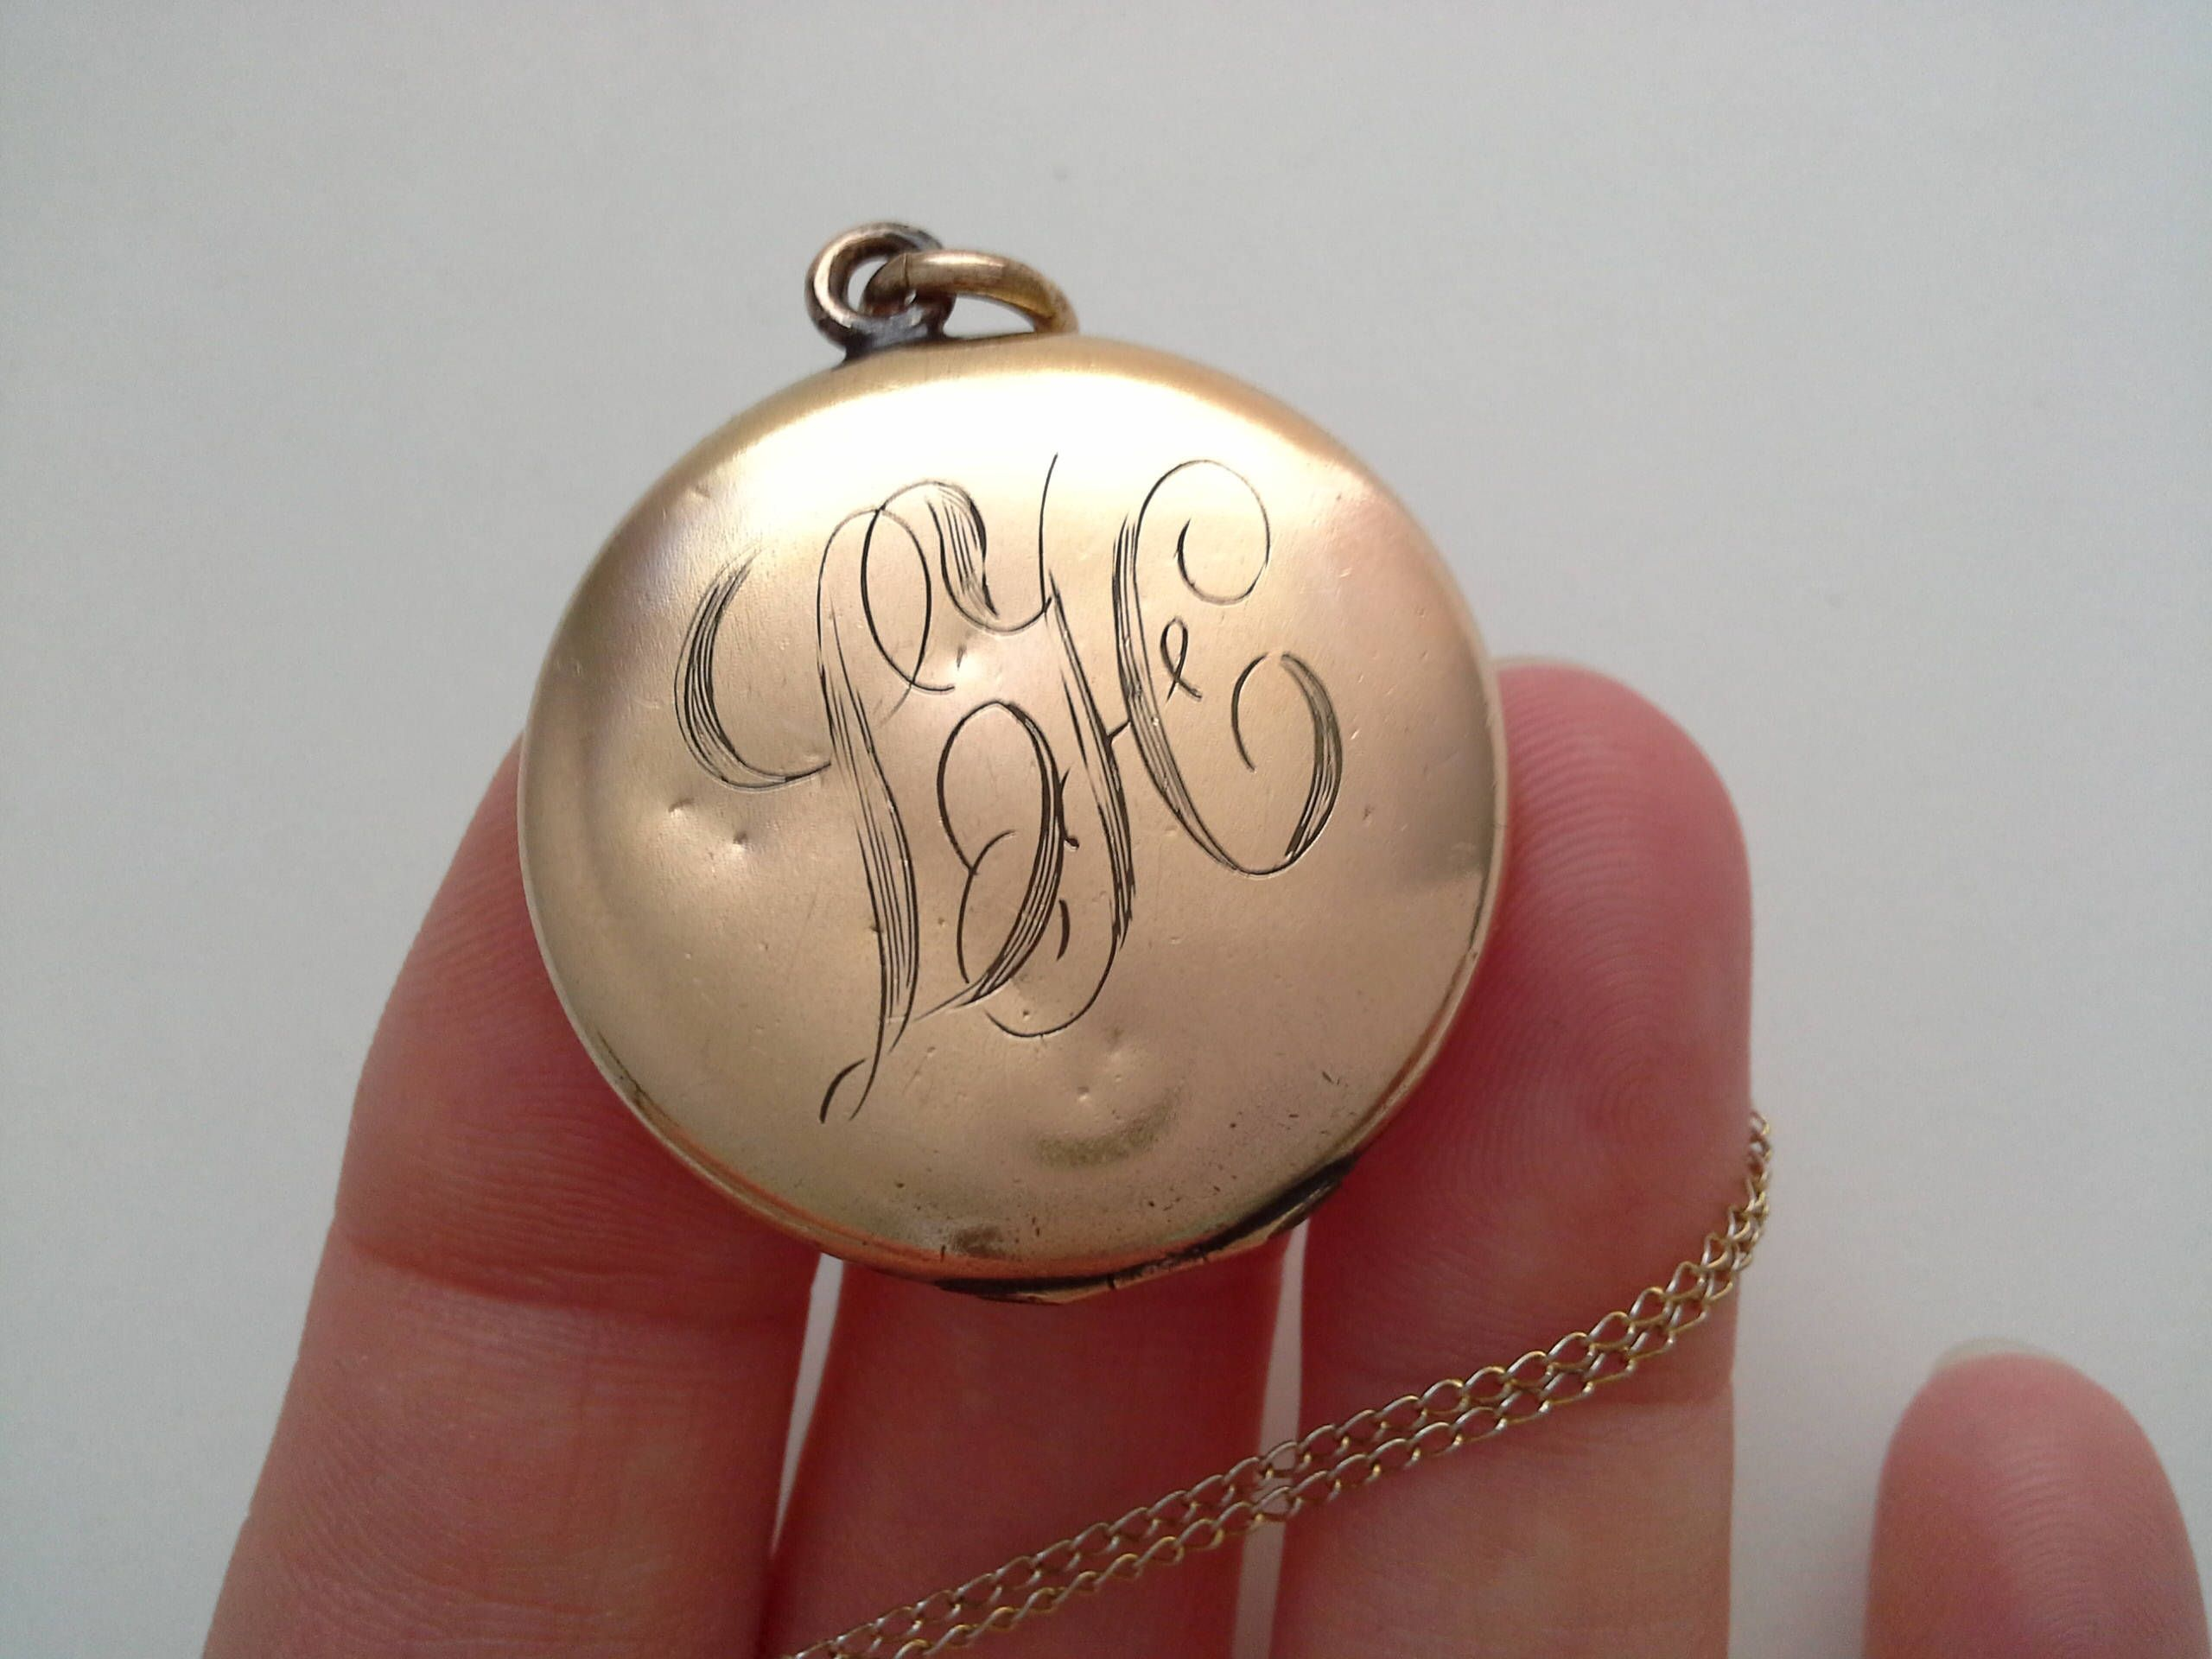 bracelet larger a email g john photo with gold rope wind htm locket friend in p lockets chain initial monogram